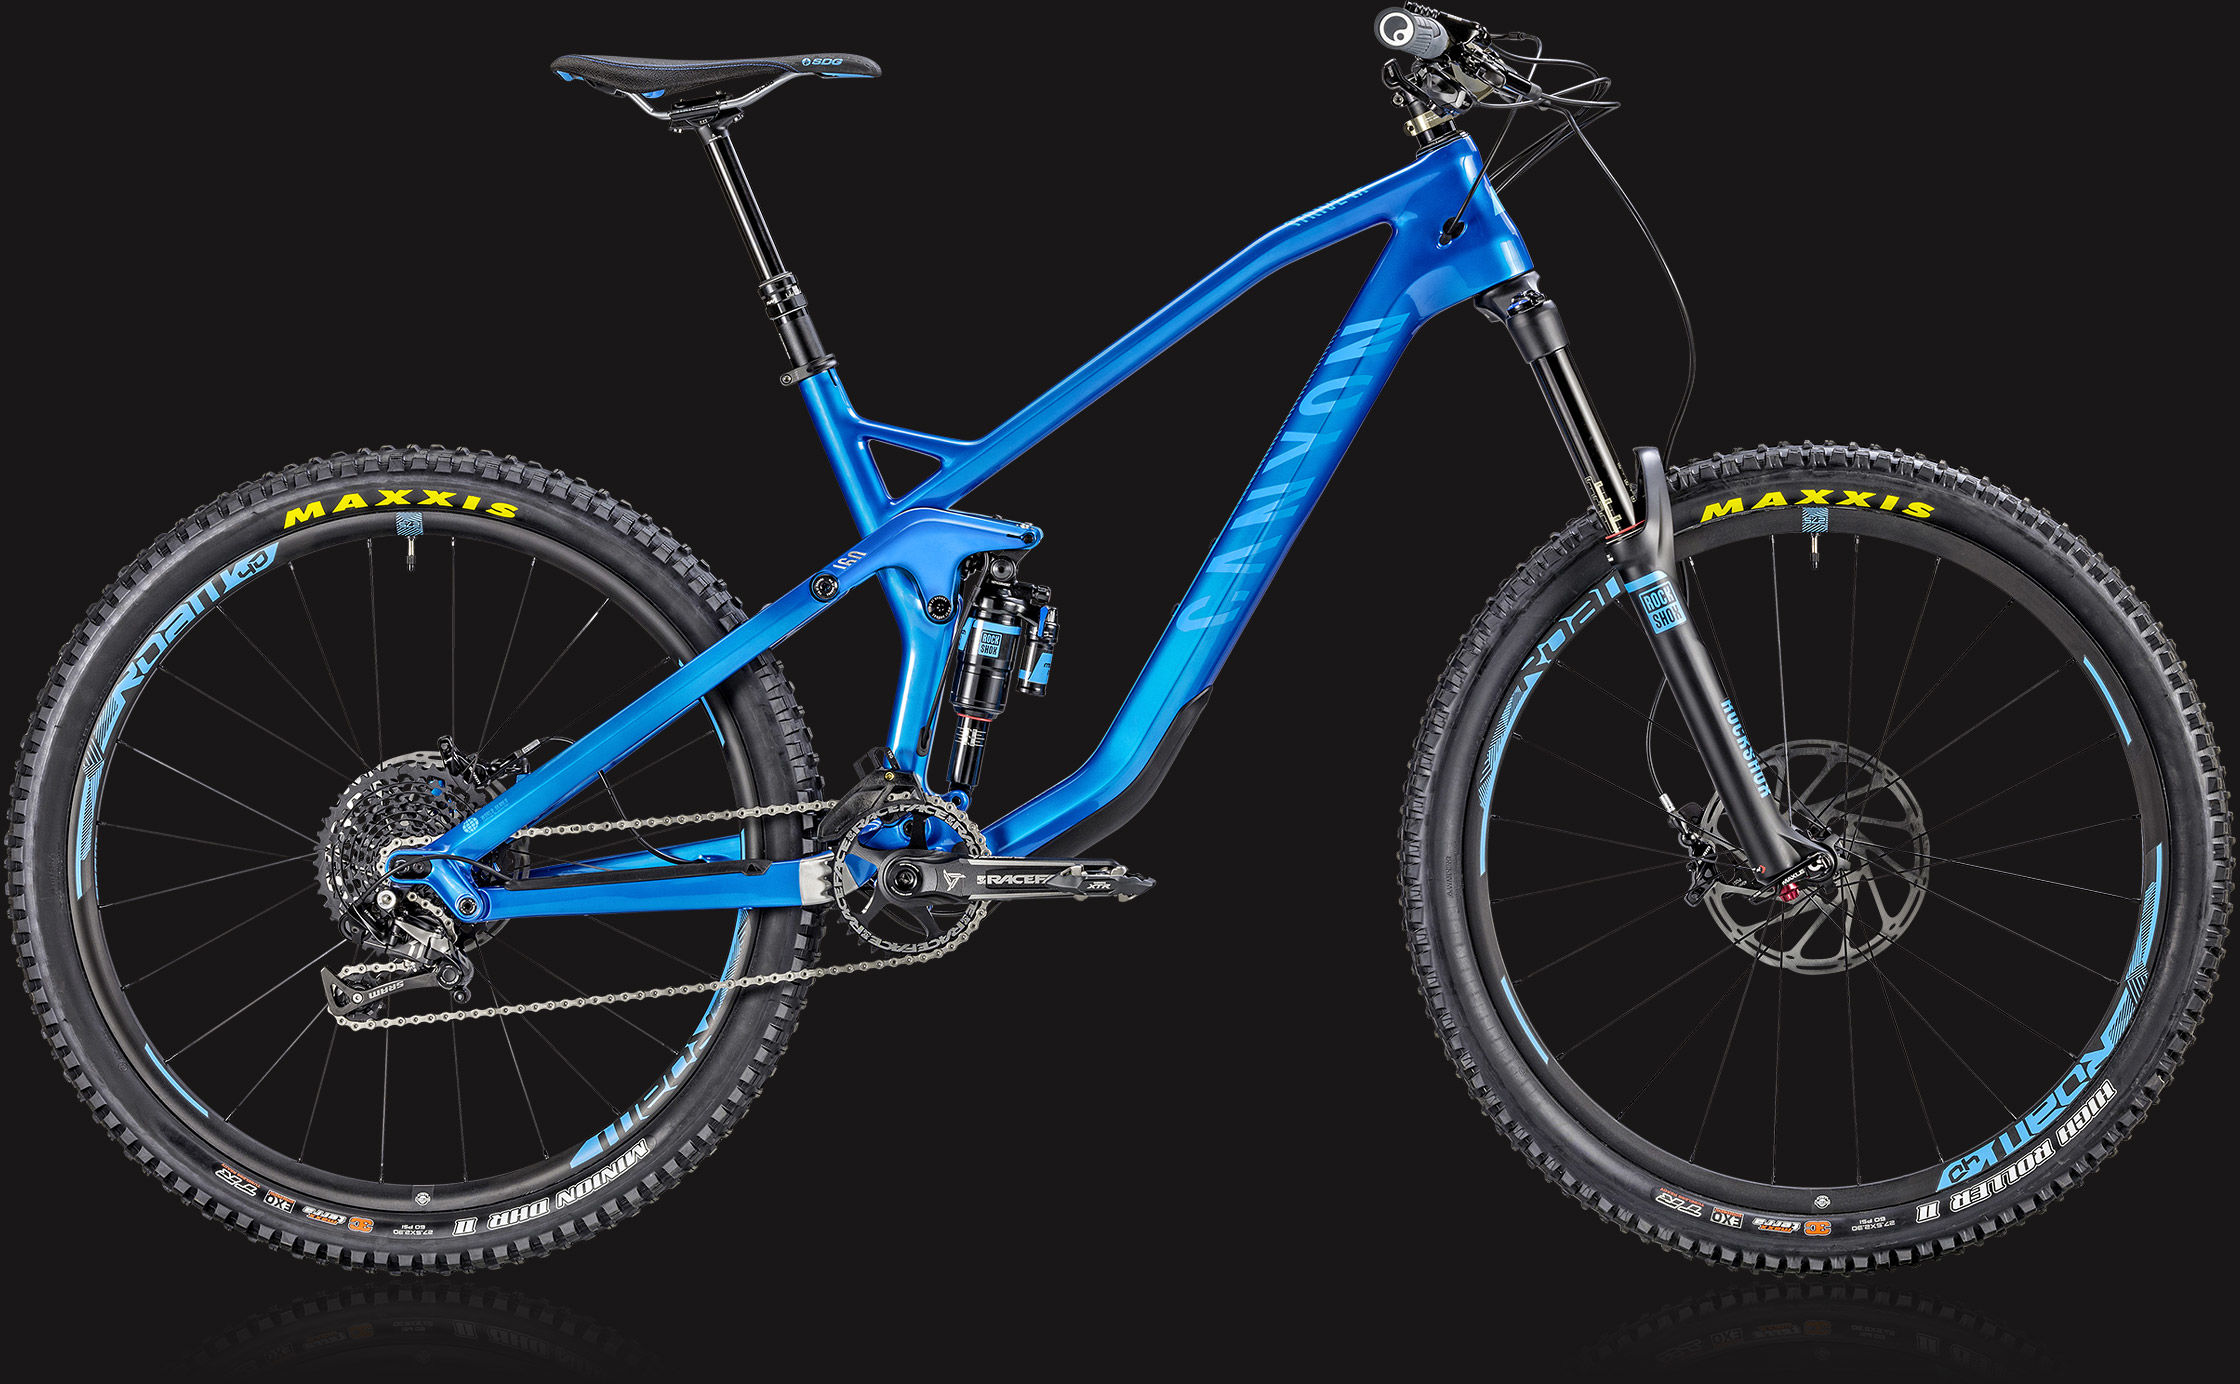 Canyon Strive Cf 8 0 Race 2014 Review The Bike List